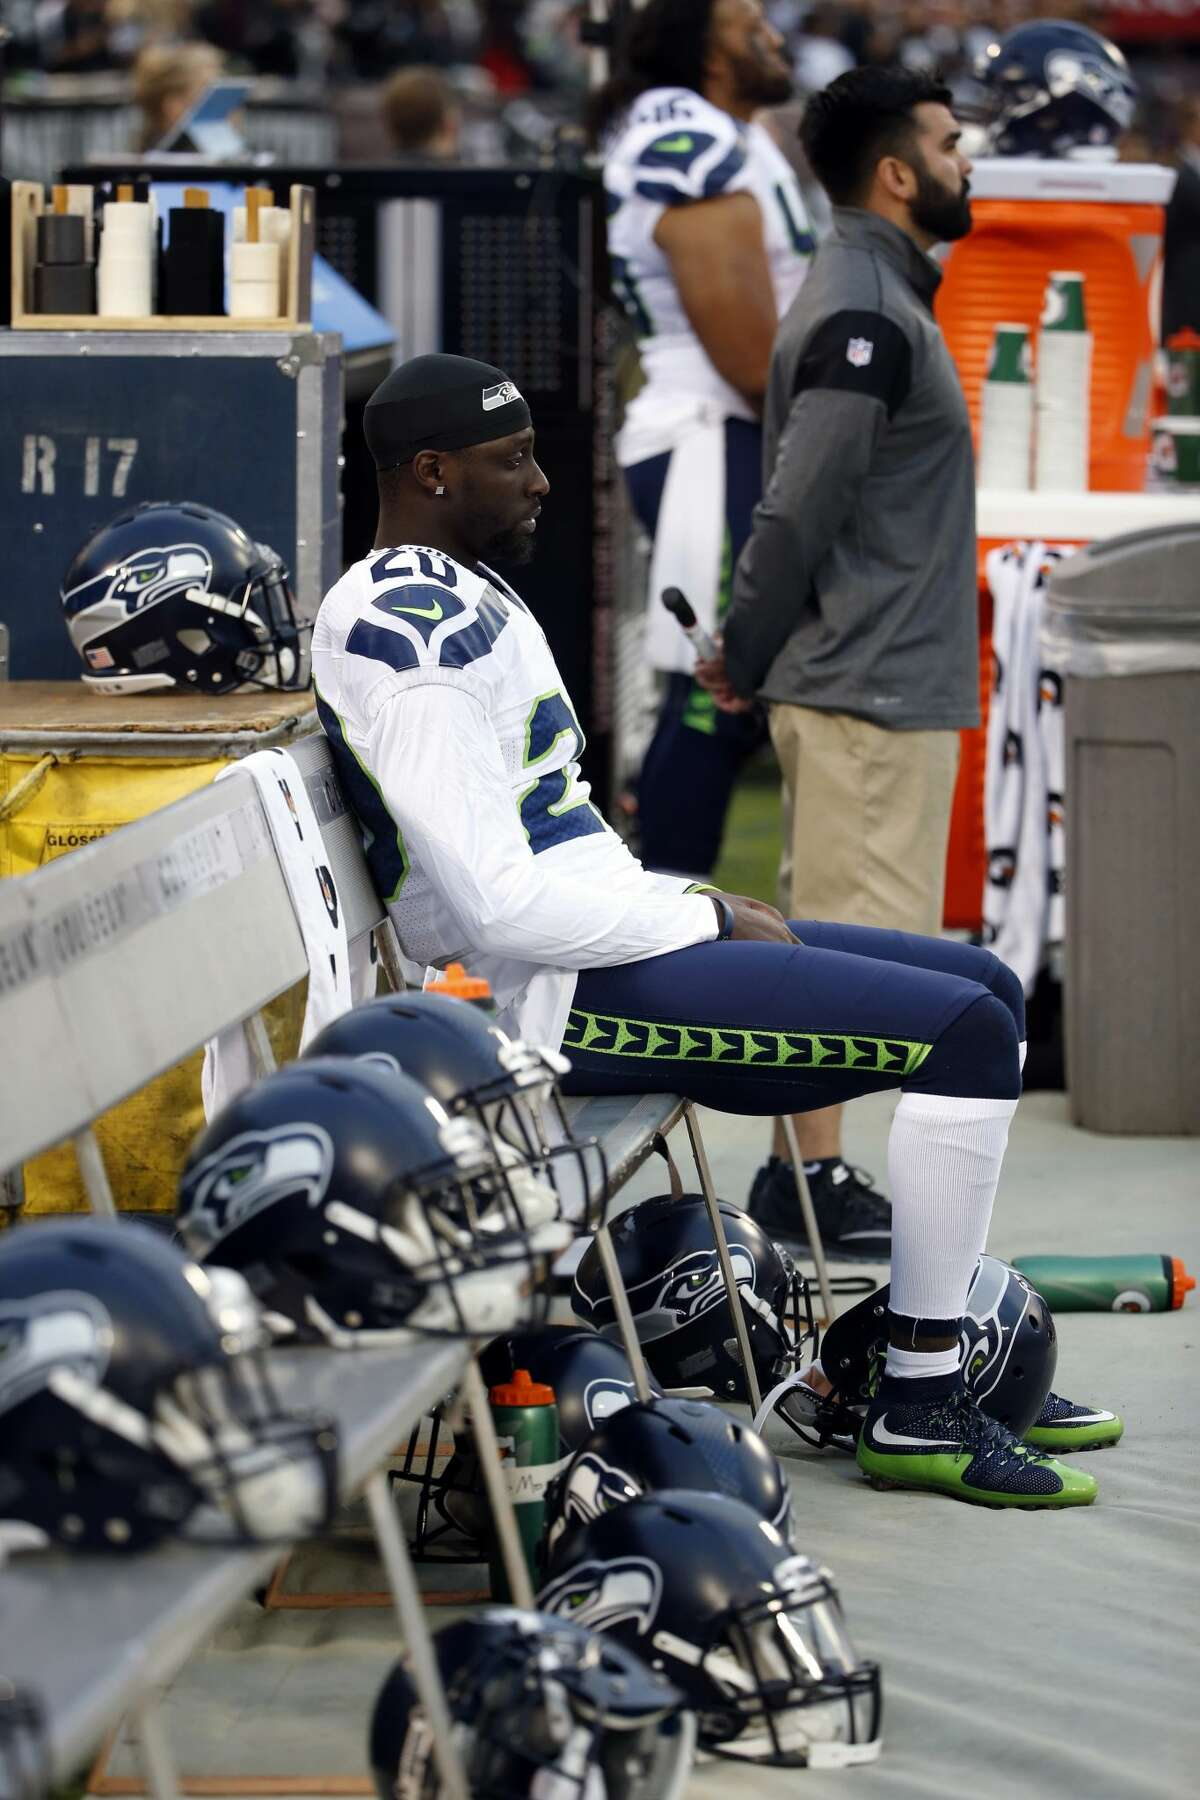 Seattle Seahawks cornerback Jeremy Lane sits as the national anthem plays before a preseason NFL football game against the Oakland Raiders, Thursday, Sept. 1, 2016, in Oakland, Calif. (AP Photo/Tony Avelar)